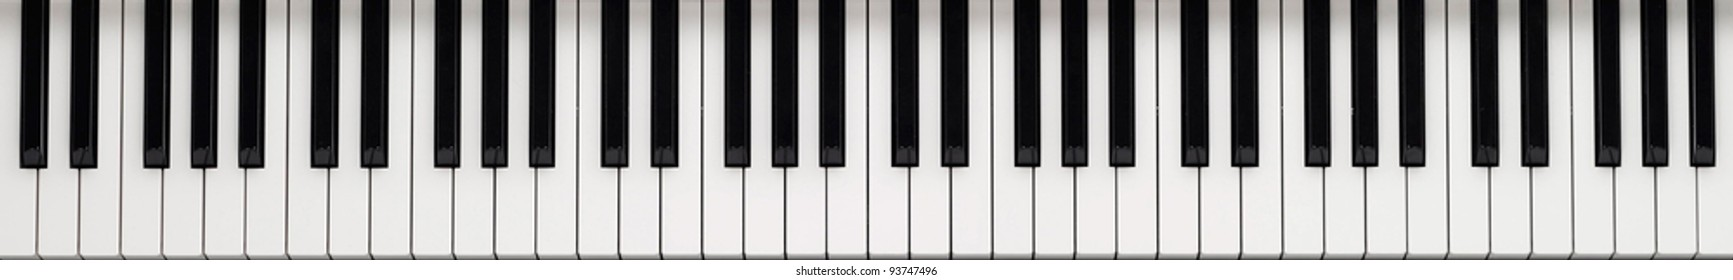 Piano Keyboard Images Stock Photos Vectors Shutterstock